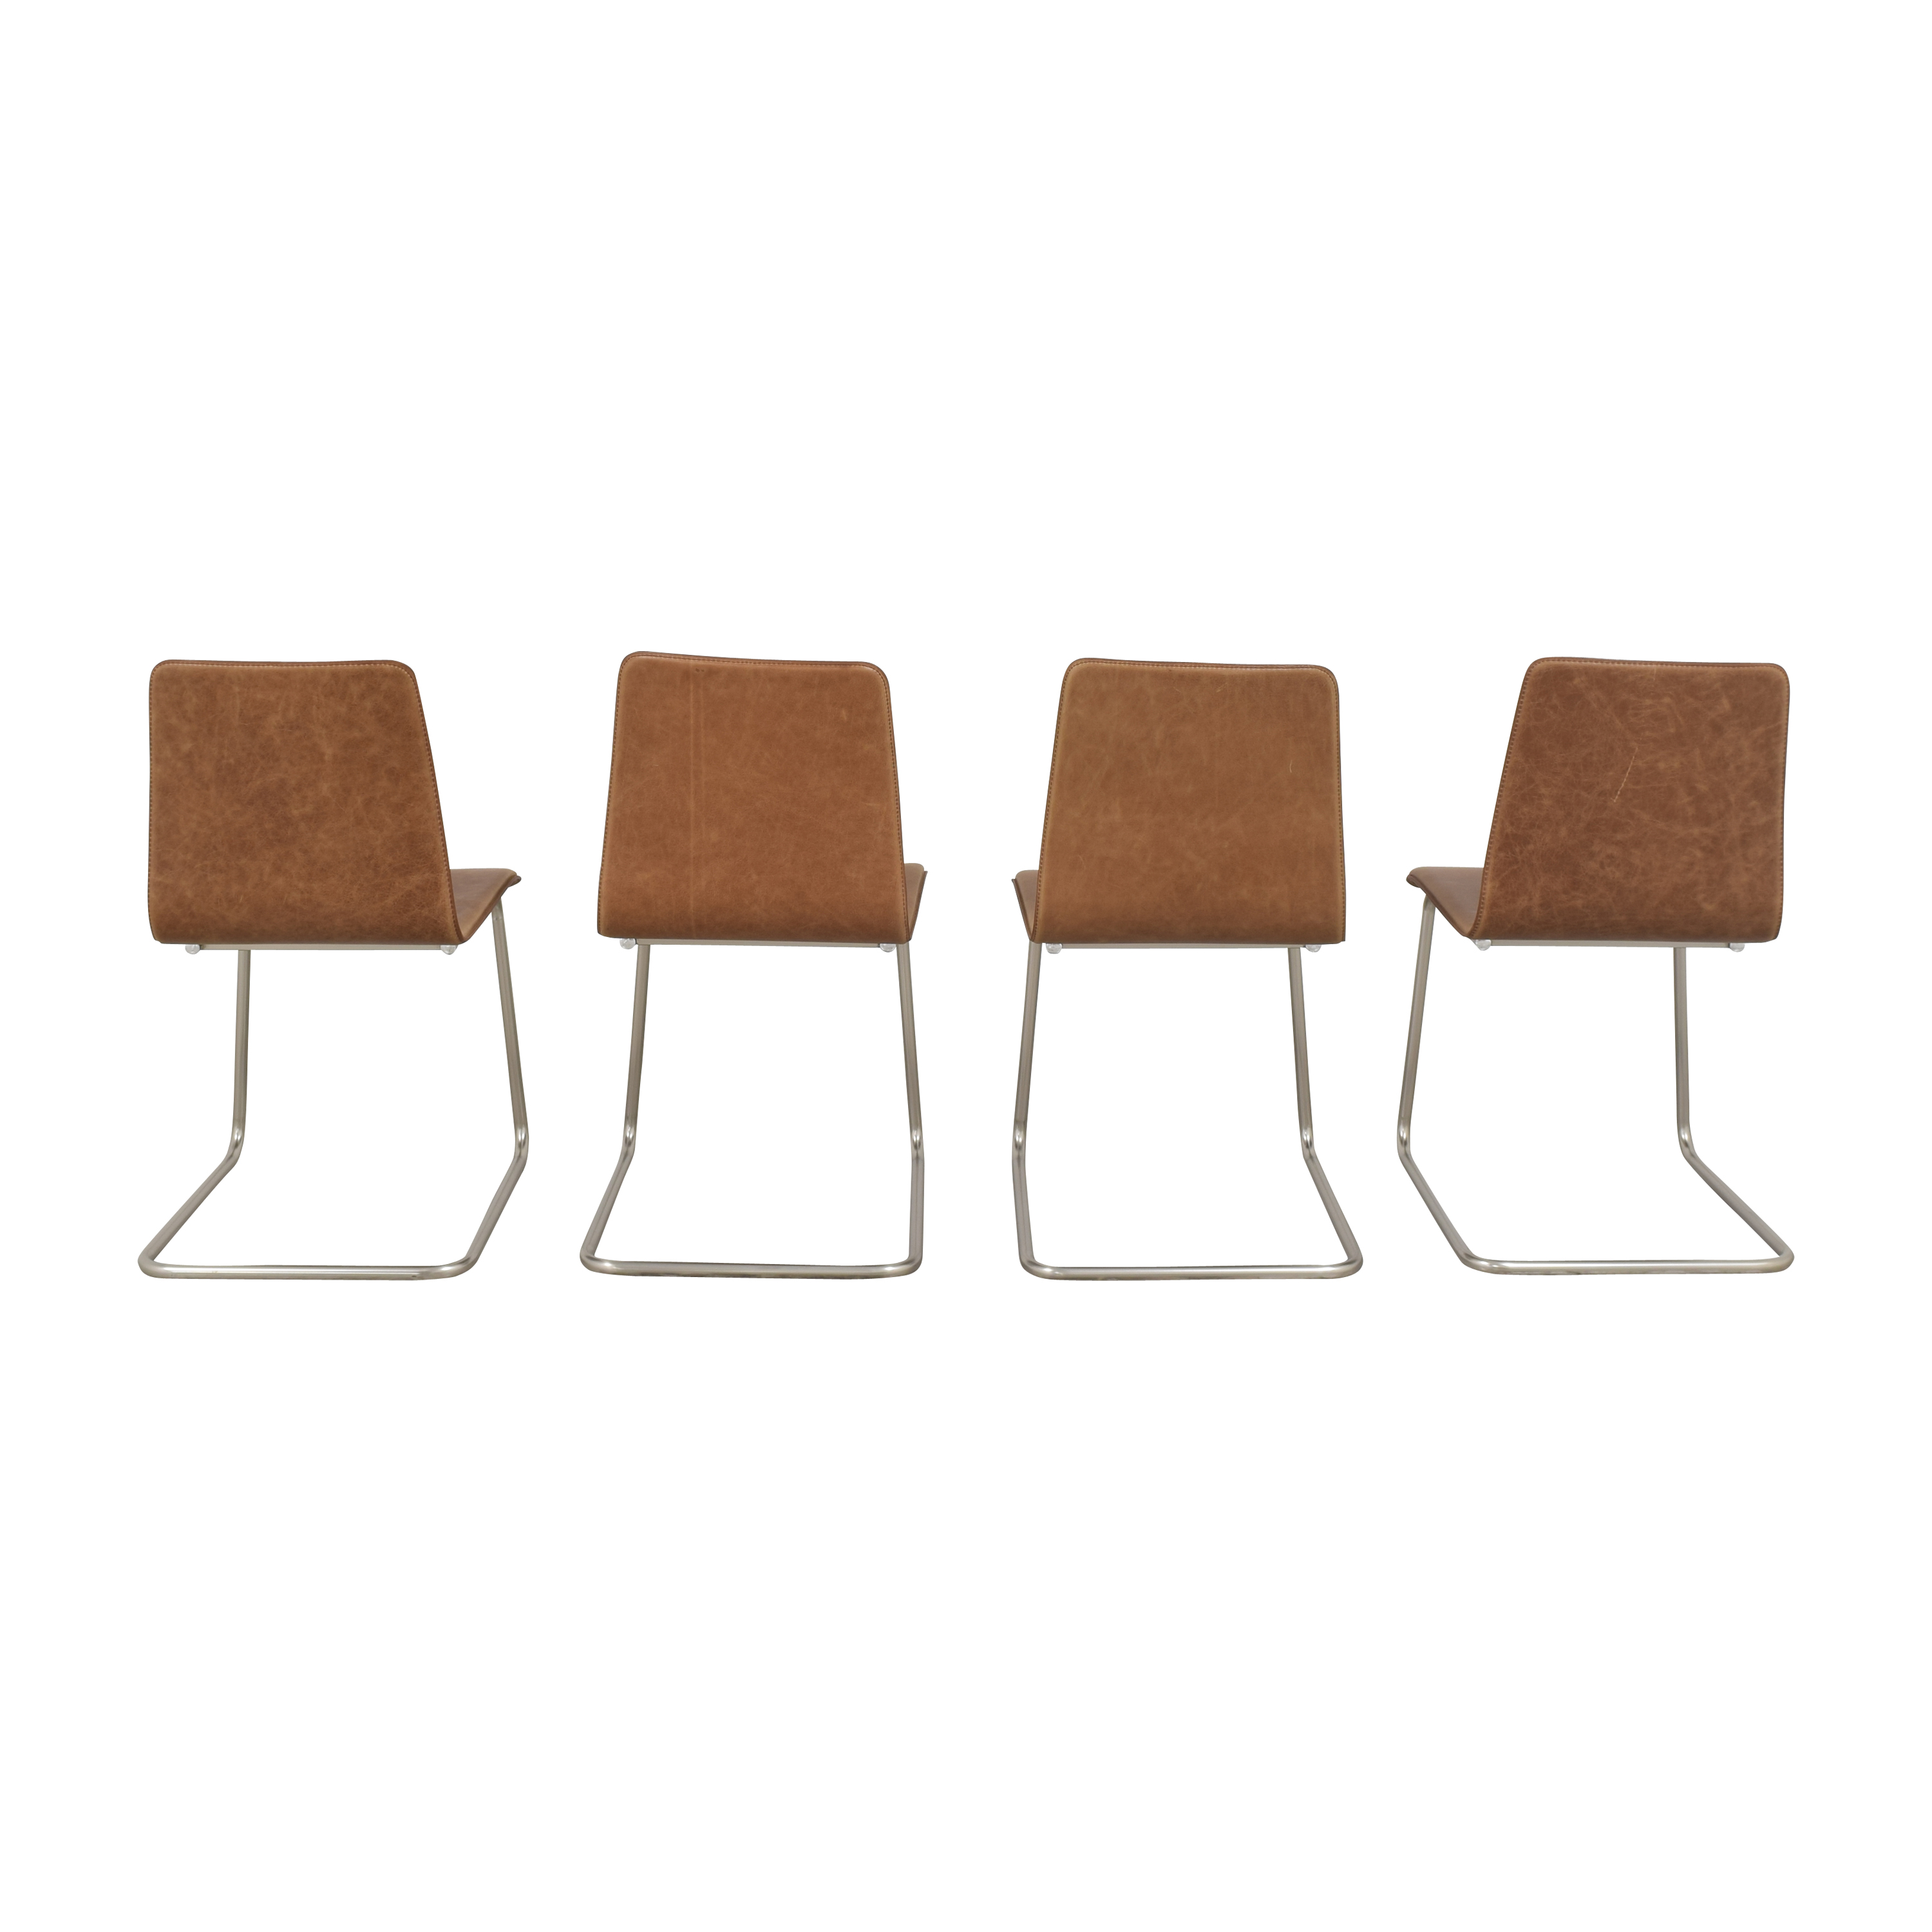 CB2 Pony Dining Chairs / Chairs